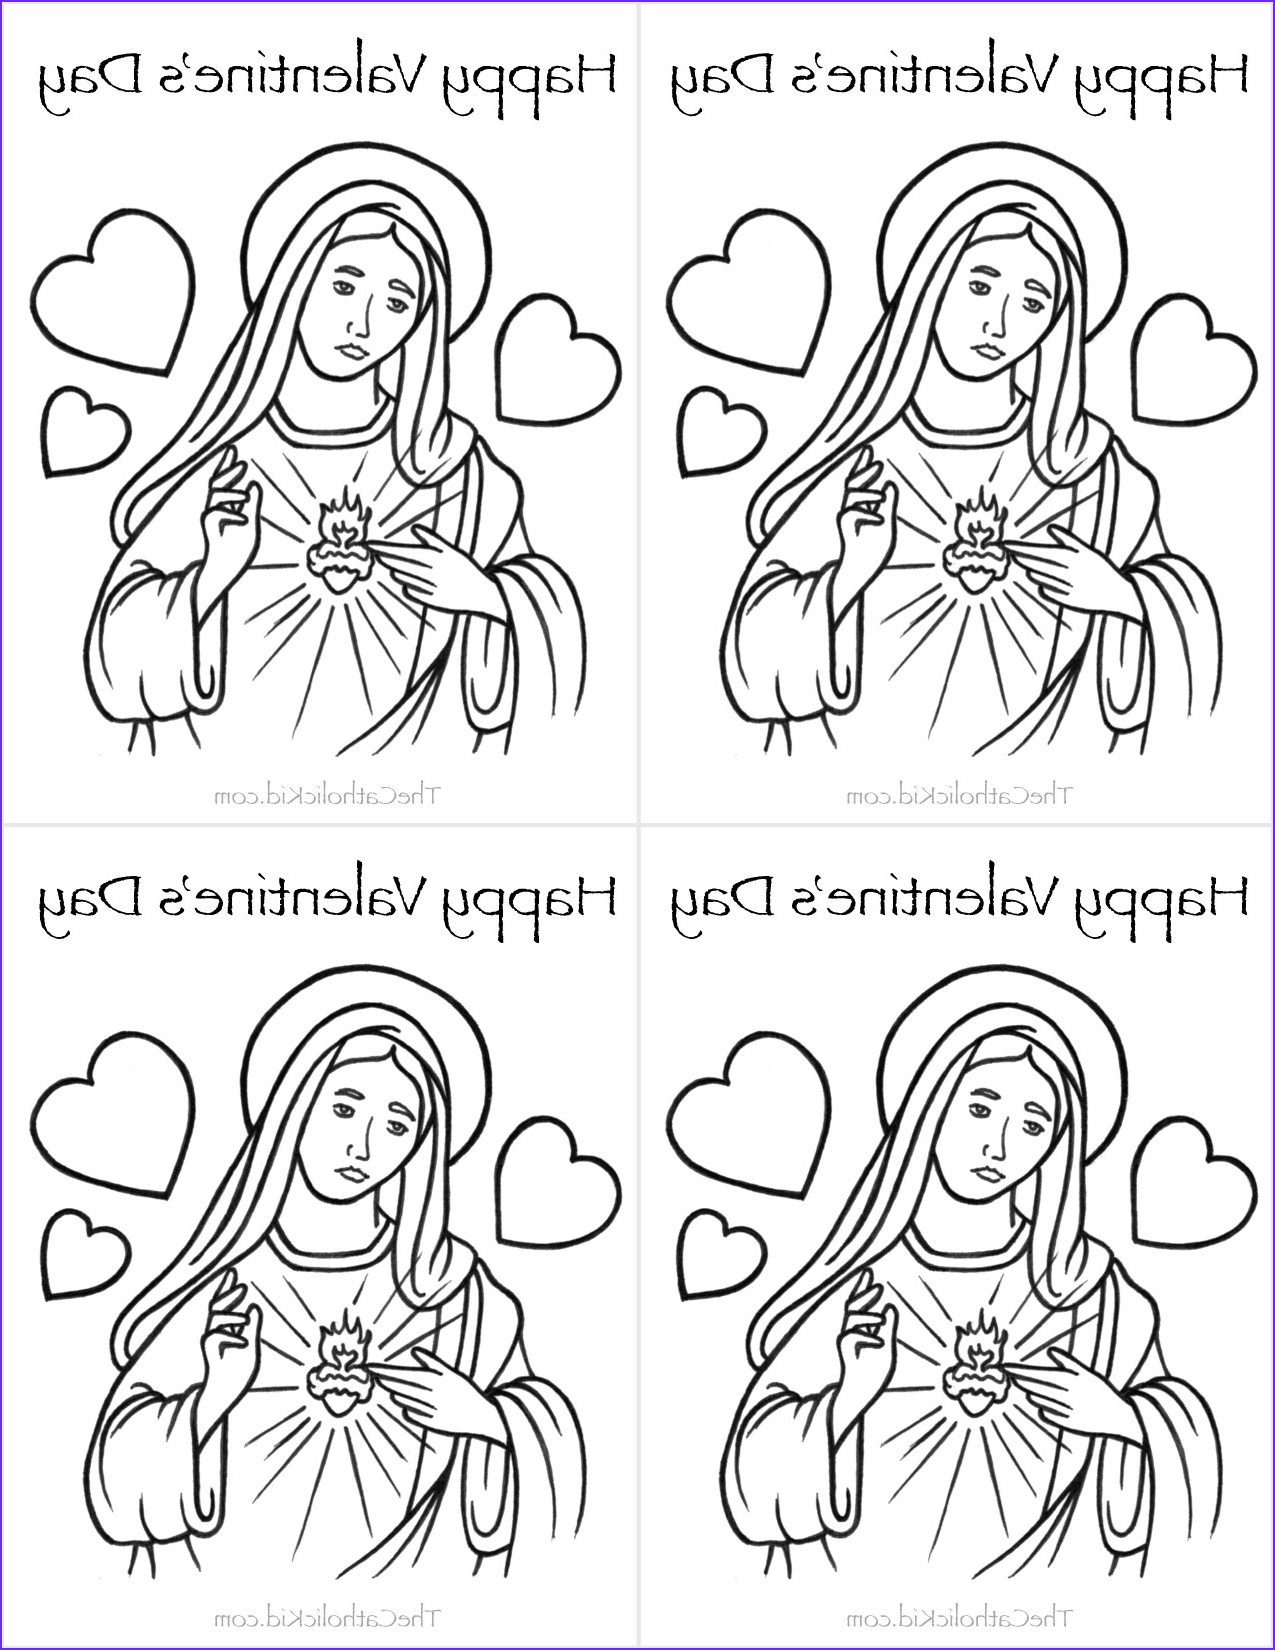 Valentines Day Coloring Cards Beautiful Photography Catholic Valentine S Day Cards to Color thecatholickid